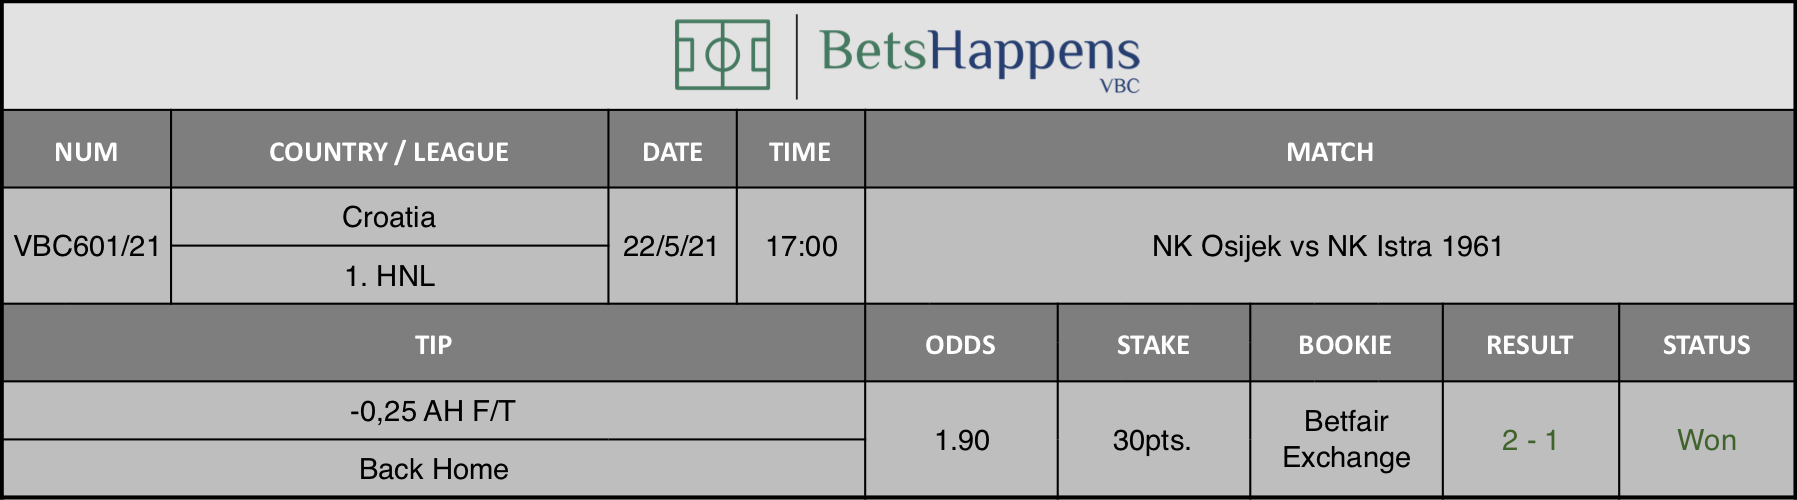 Results of our tip for the NK Osijek vs NK Istra 1961 match where -0,25 AH F/T Back Home is recommended.